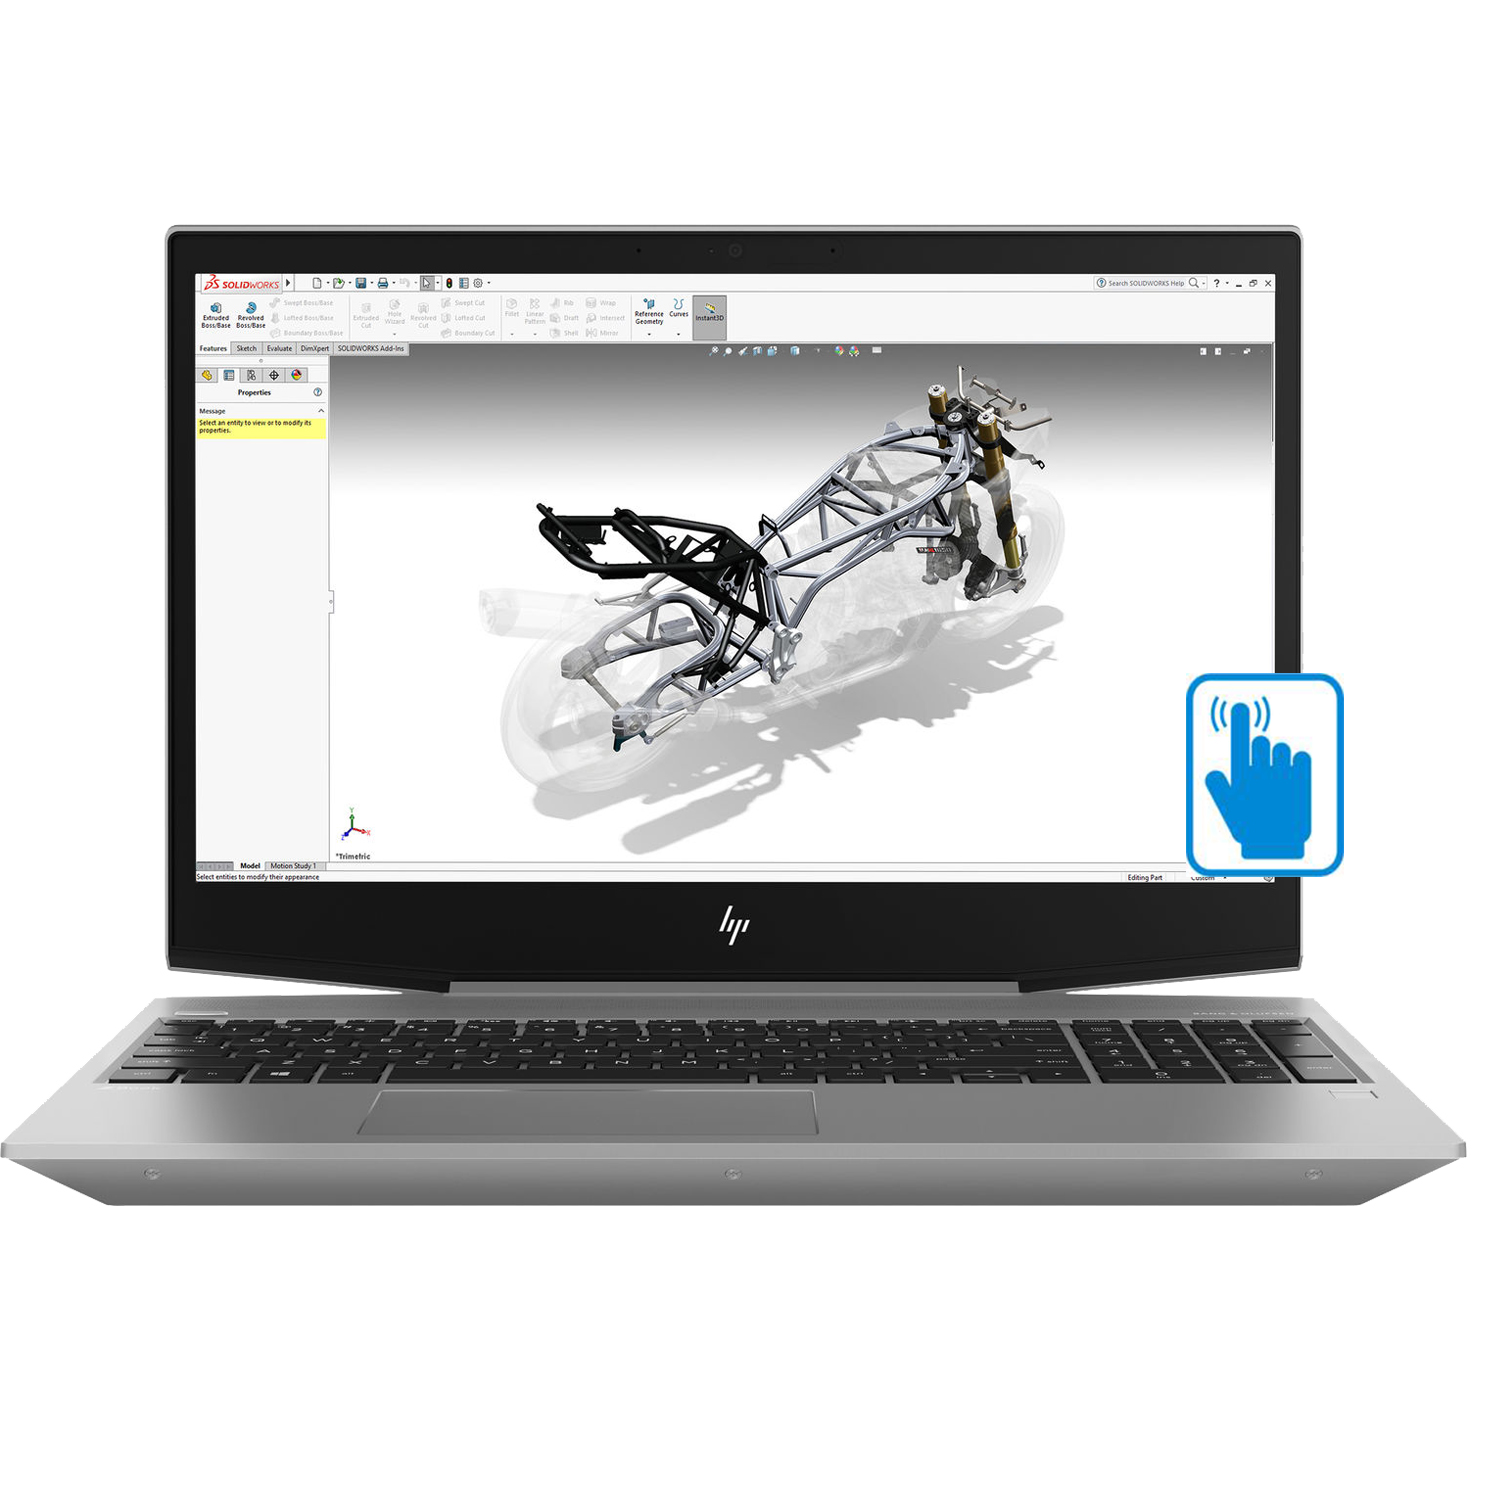 "HP ZBook 15v G5 Premium Home and Business 15.6 Touchsreen Mobile Workstation Laptop (Core i7-8750H, 8GB RAM, 256GB PCIe SSD, 15.6"" FHD 1920x1080, NVIDIA Quadro P600, Fingerprint, Win10 Pro)"